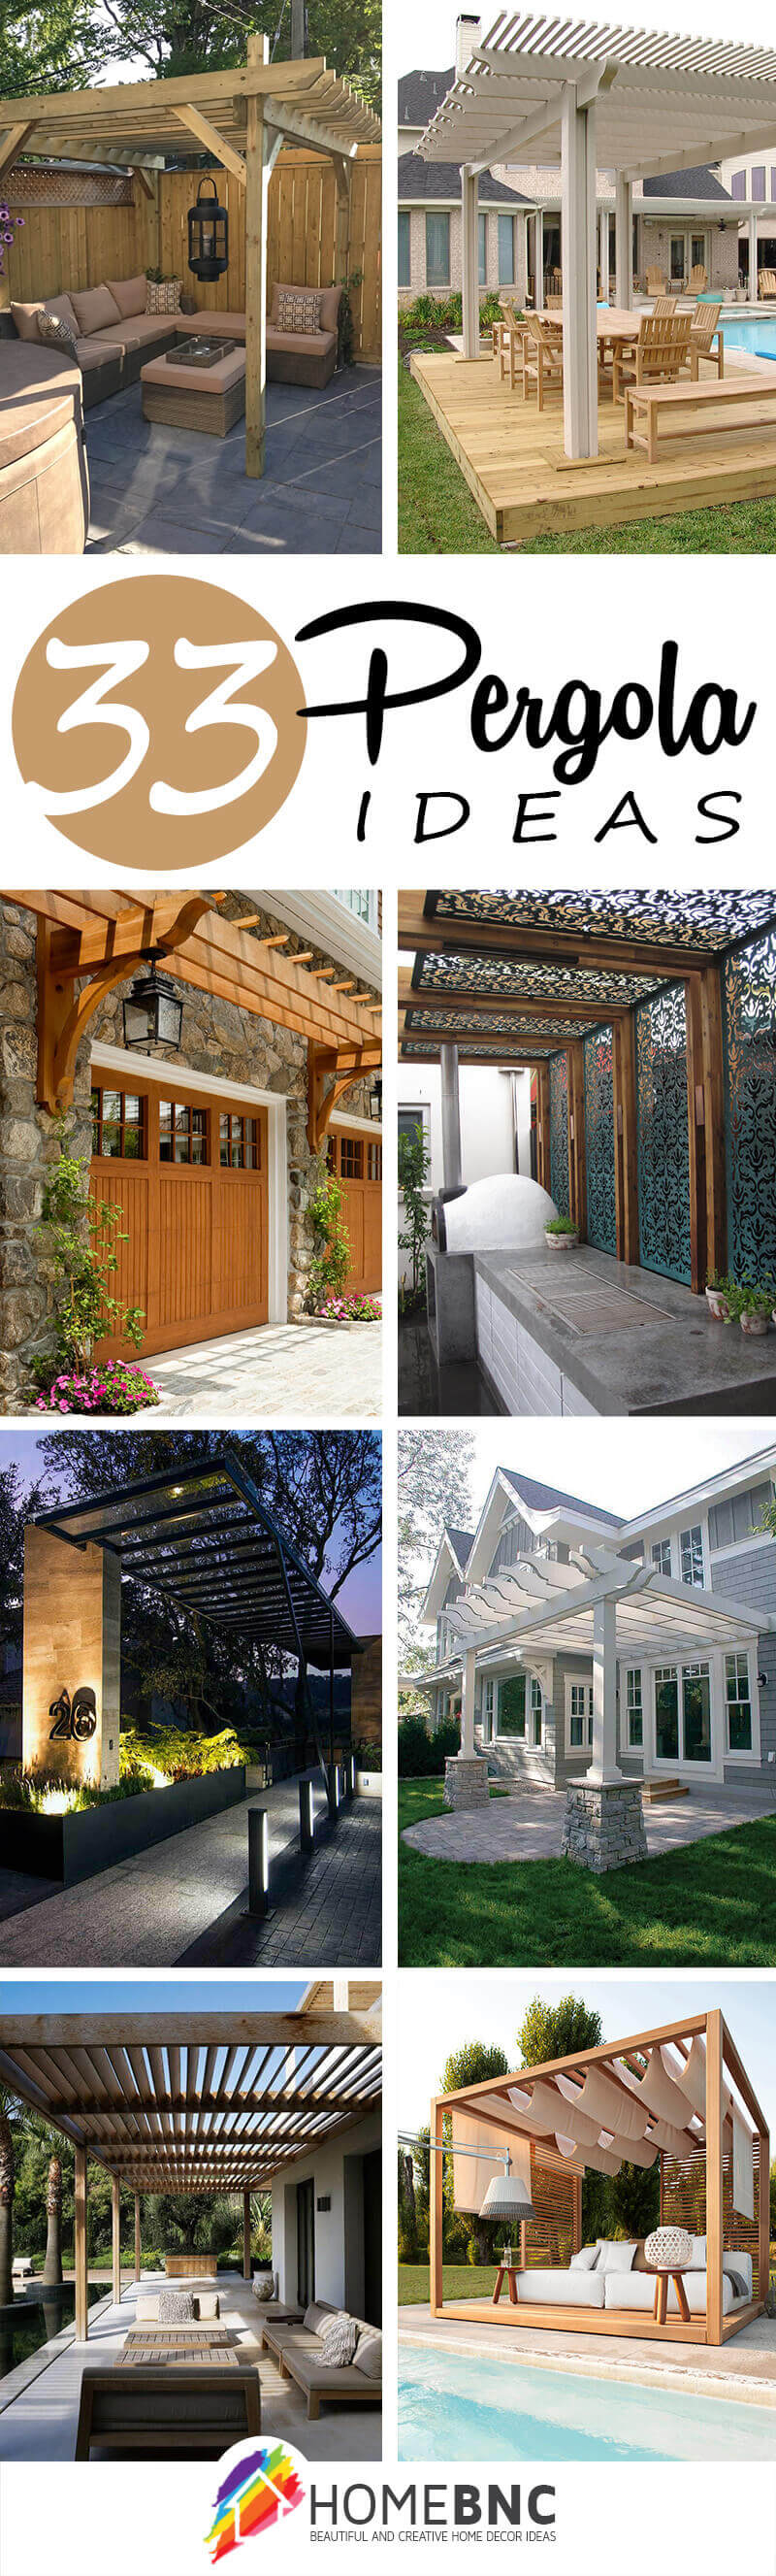 32 Best Pergola Ideas and Designs You Will in 2019 Ideas For Wet Backyards on ideas for small backyards, ideas for ugly backyards, ideas for muddy backyards, ideas for big backyards,